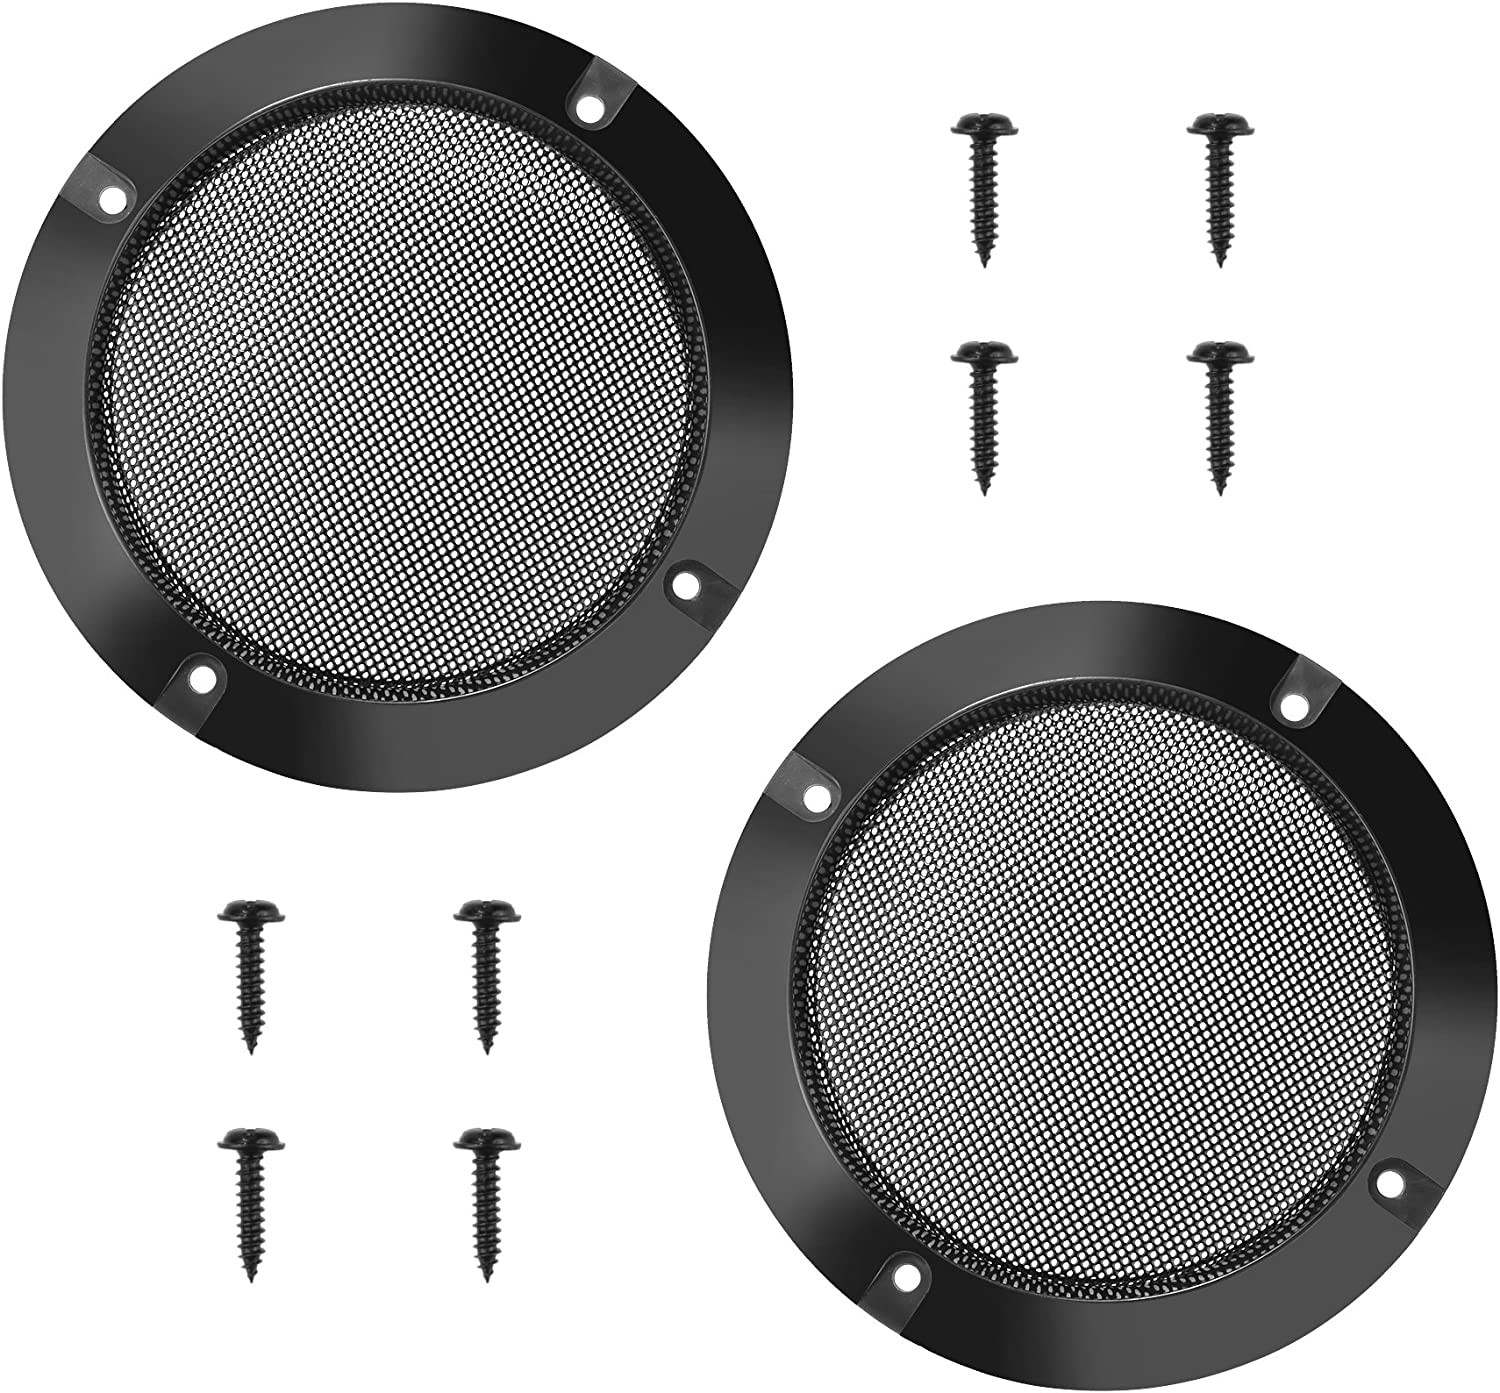 Bluecell 10pcs 10.10inch Mesh Speaker Grill Covers Guard Protector Speaker  Decorative Circle with Screw (Black Color)